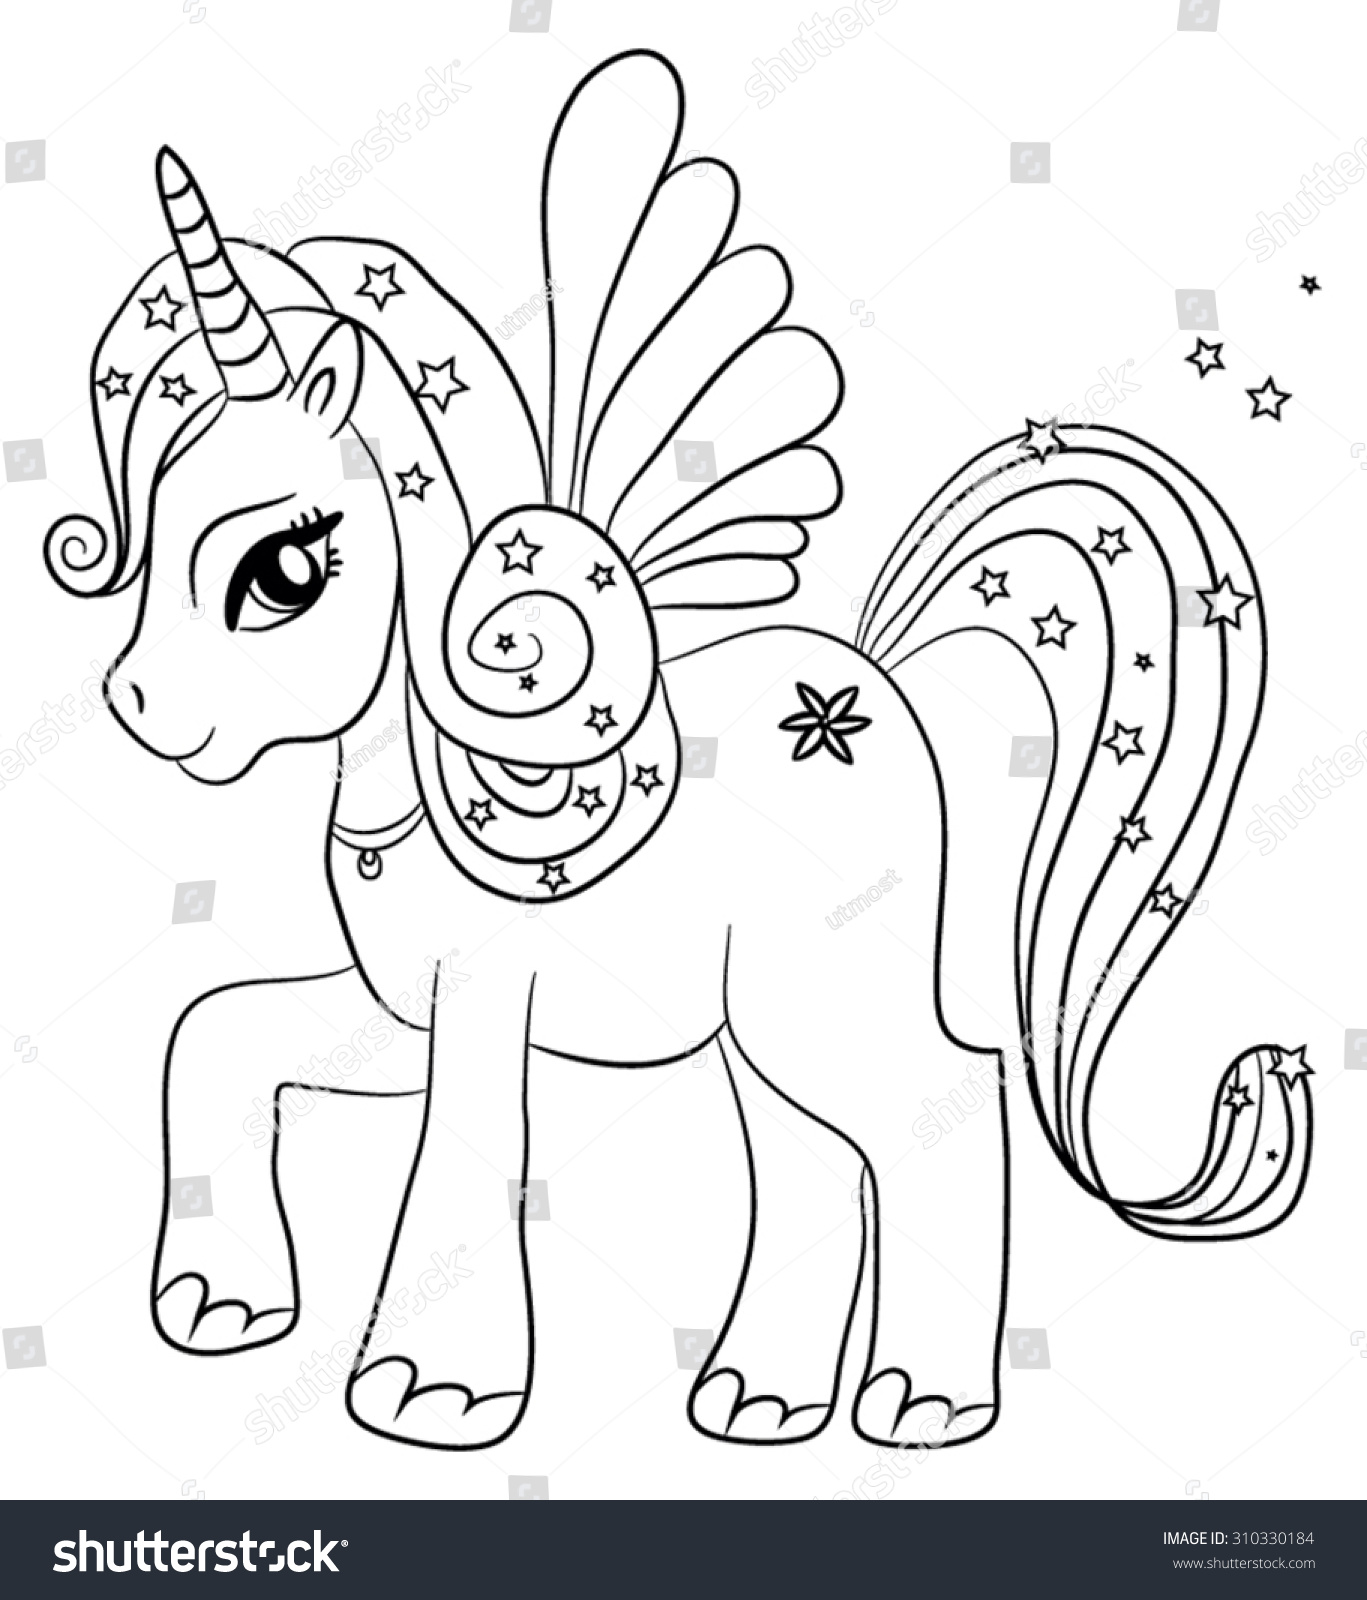 Coloring Pages Unicorn Coloring Pages Online unicorn coloring page eassume com rainbow pages